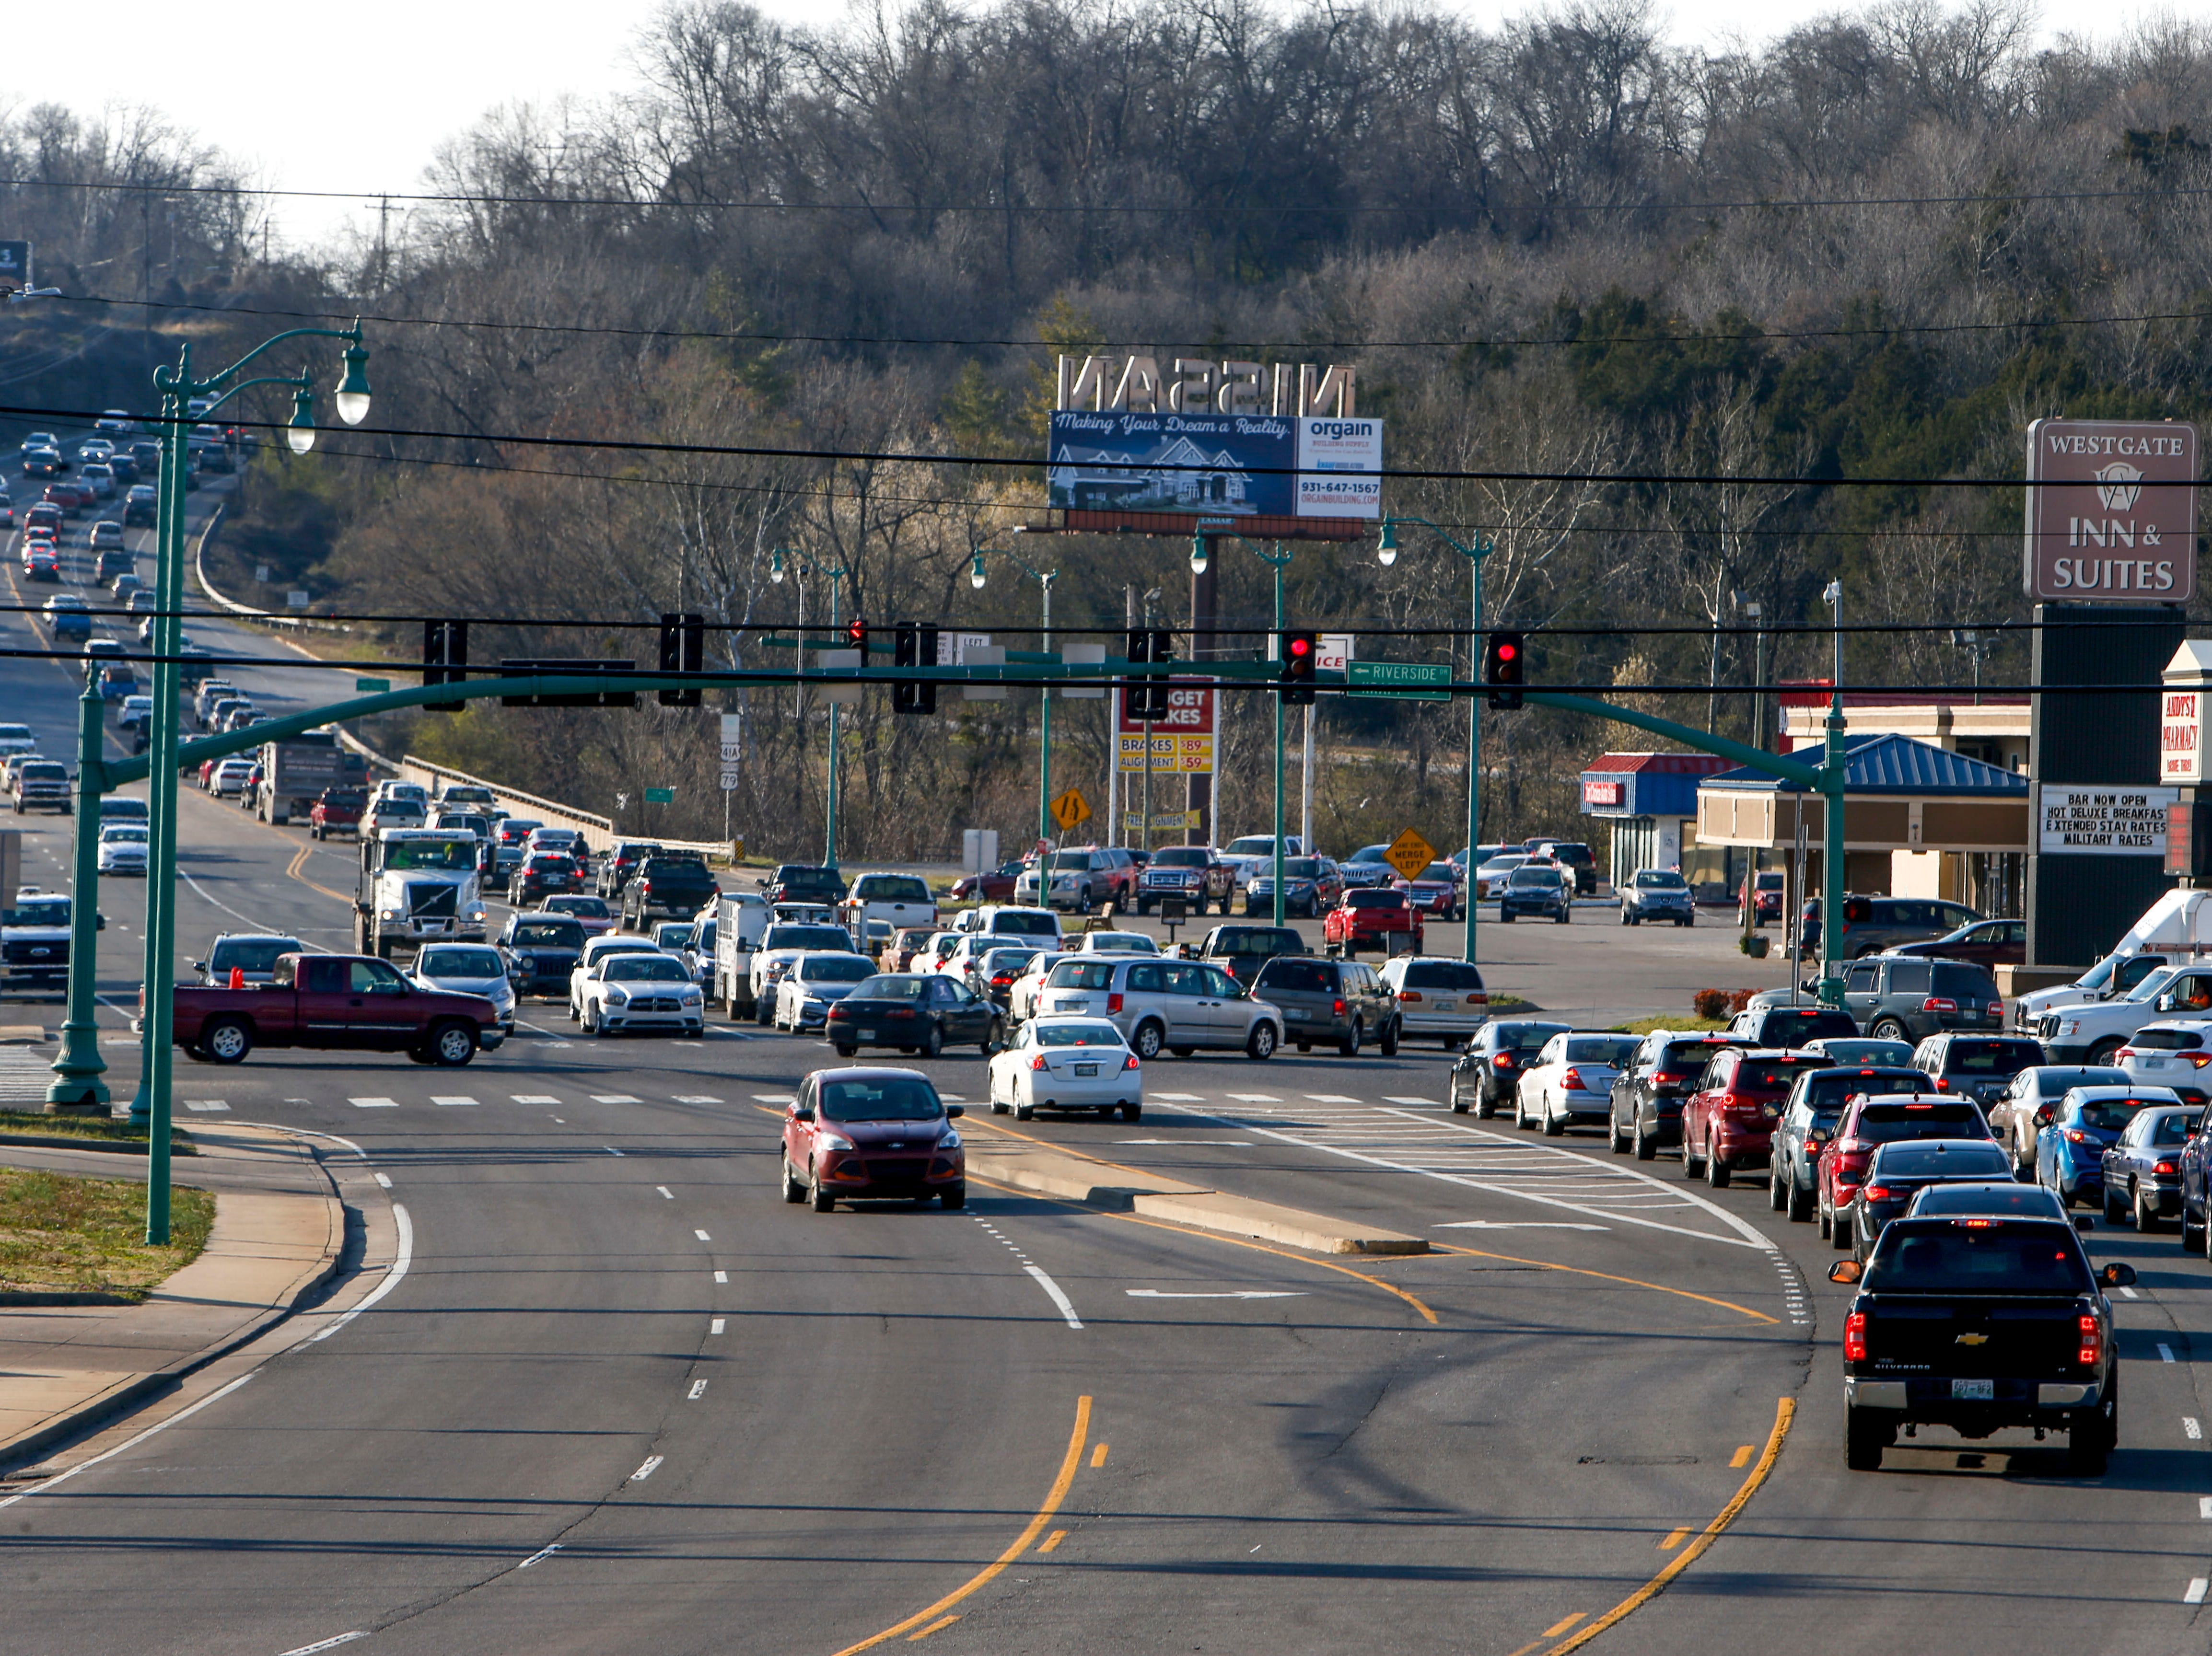 Traffic backs up to the intersection going up the hill on North 2nd Street at the intersection of U.S. 41 and North 2nd St in Clarksville, Tenn., on Tuesday, March 19, 2019.